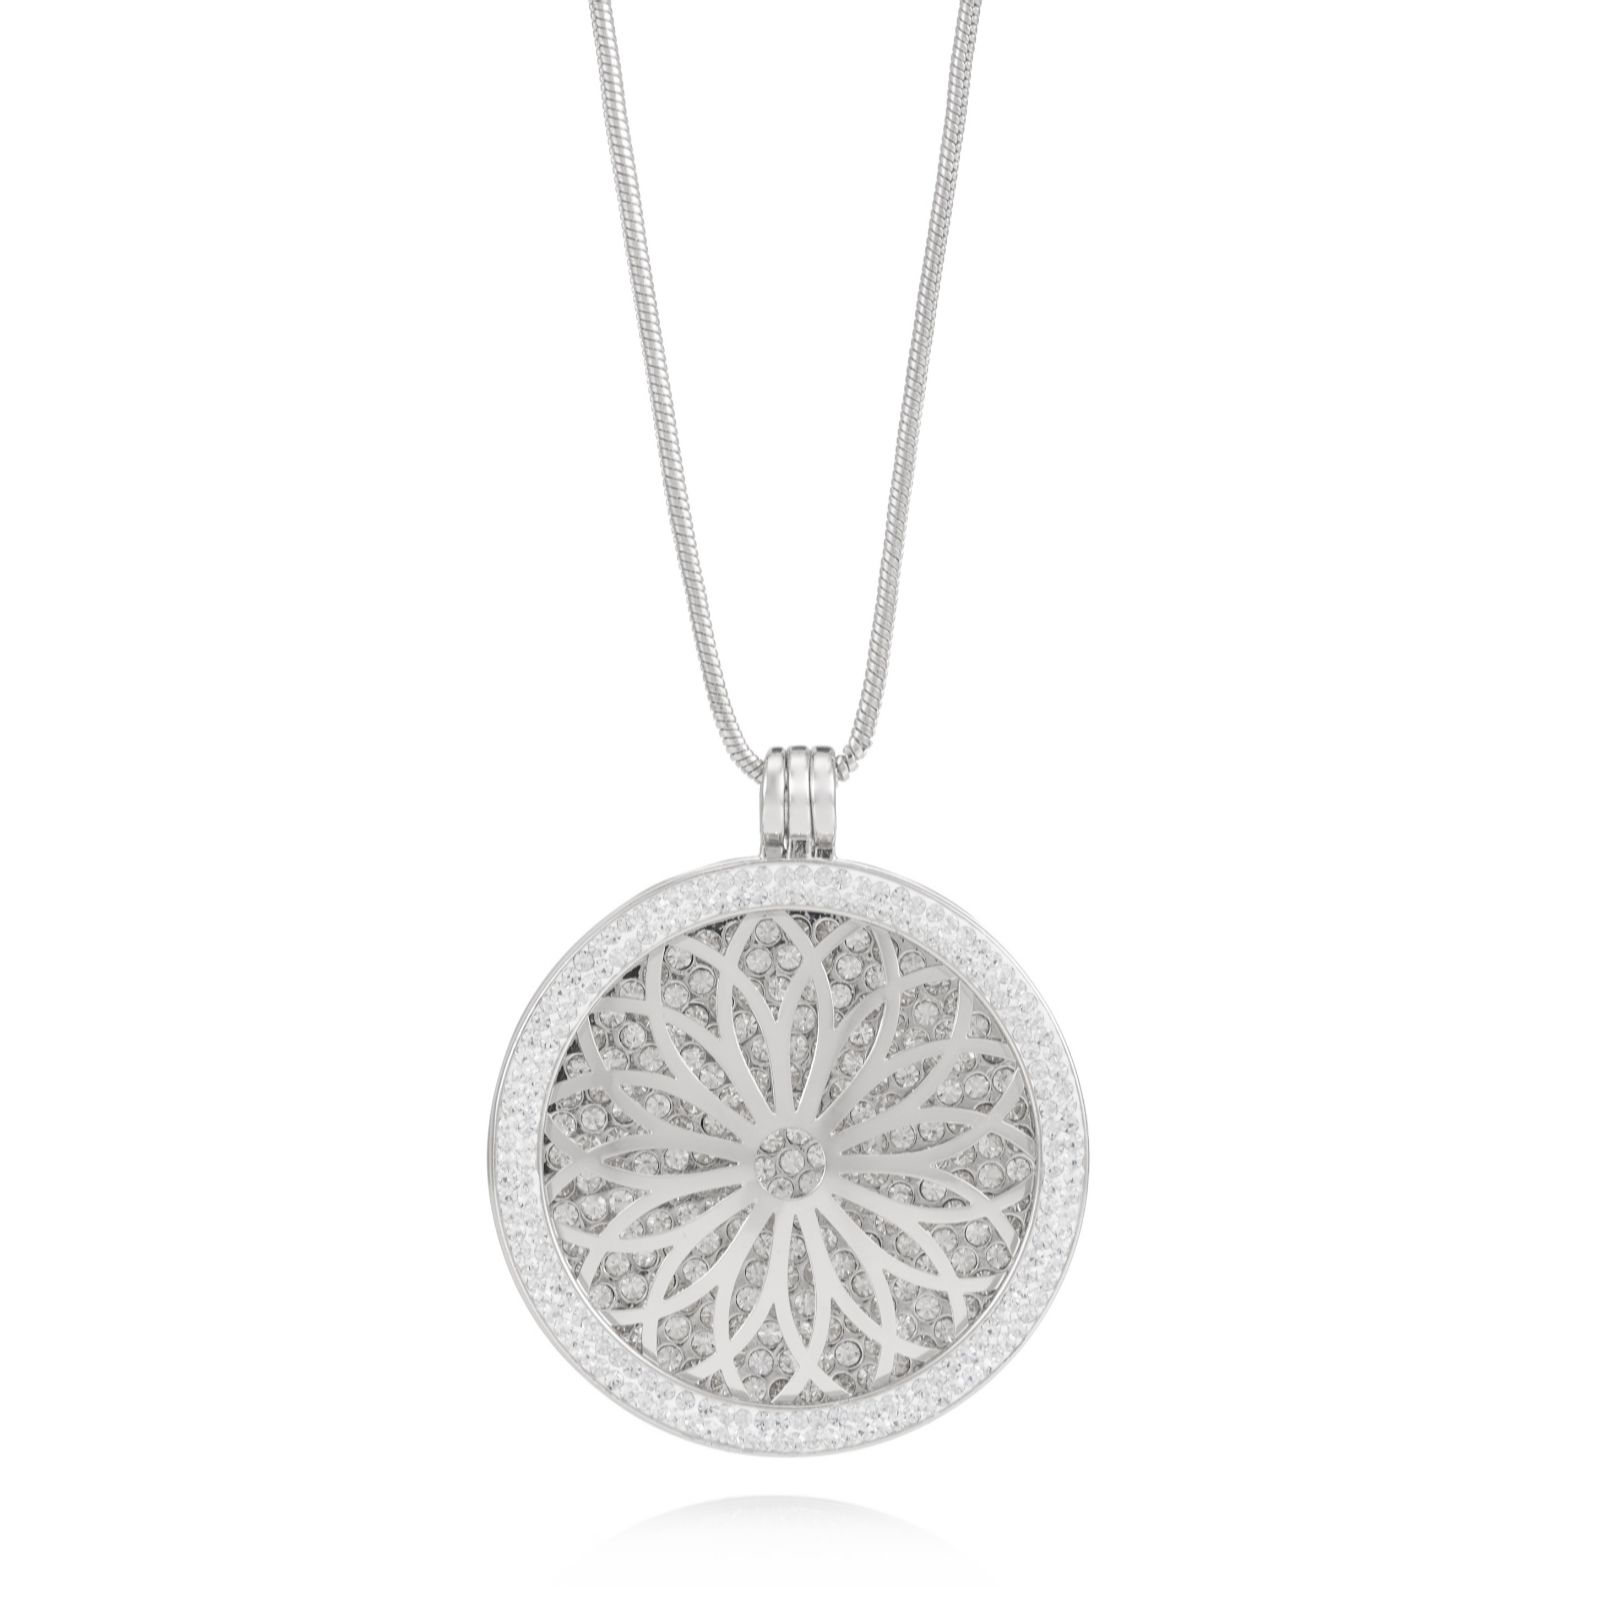 Interchangeable Disc Necklace: Outlet Frank Usher Crystal Interchangeable Disc 80cm